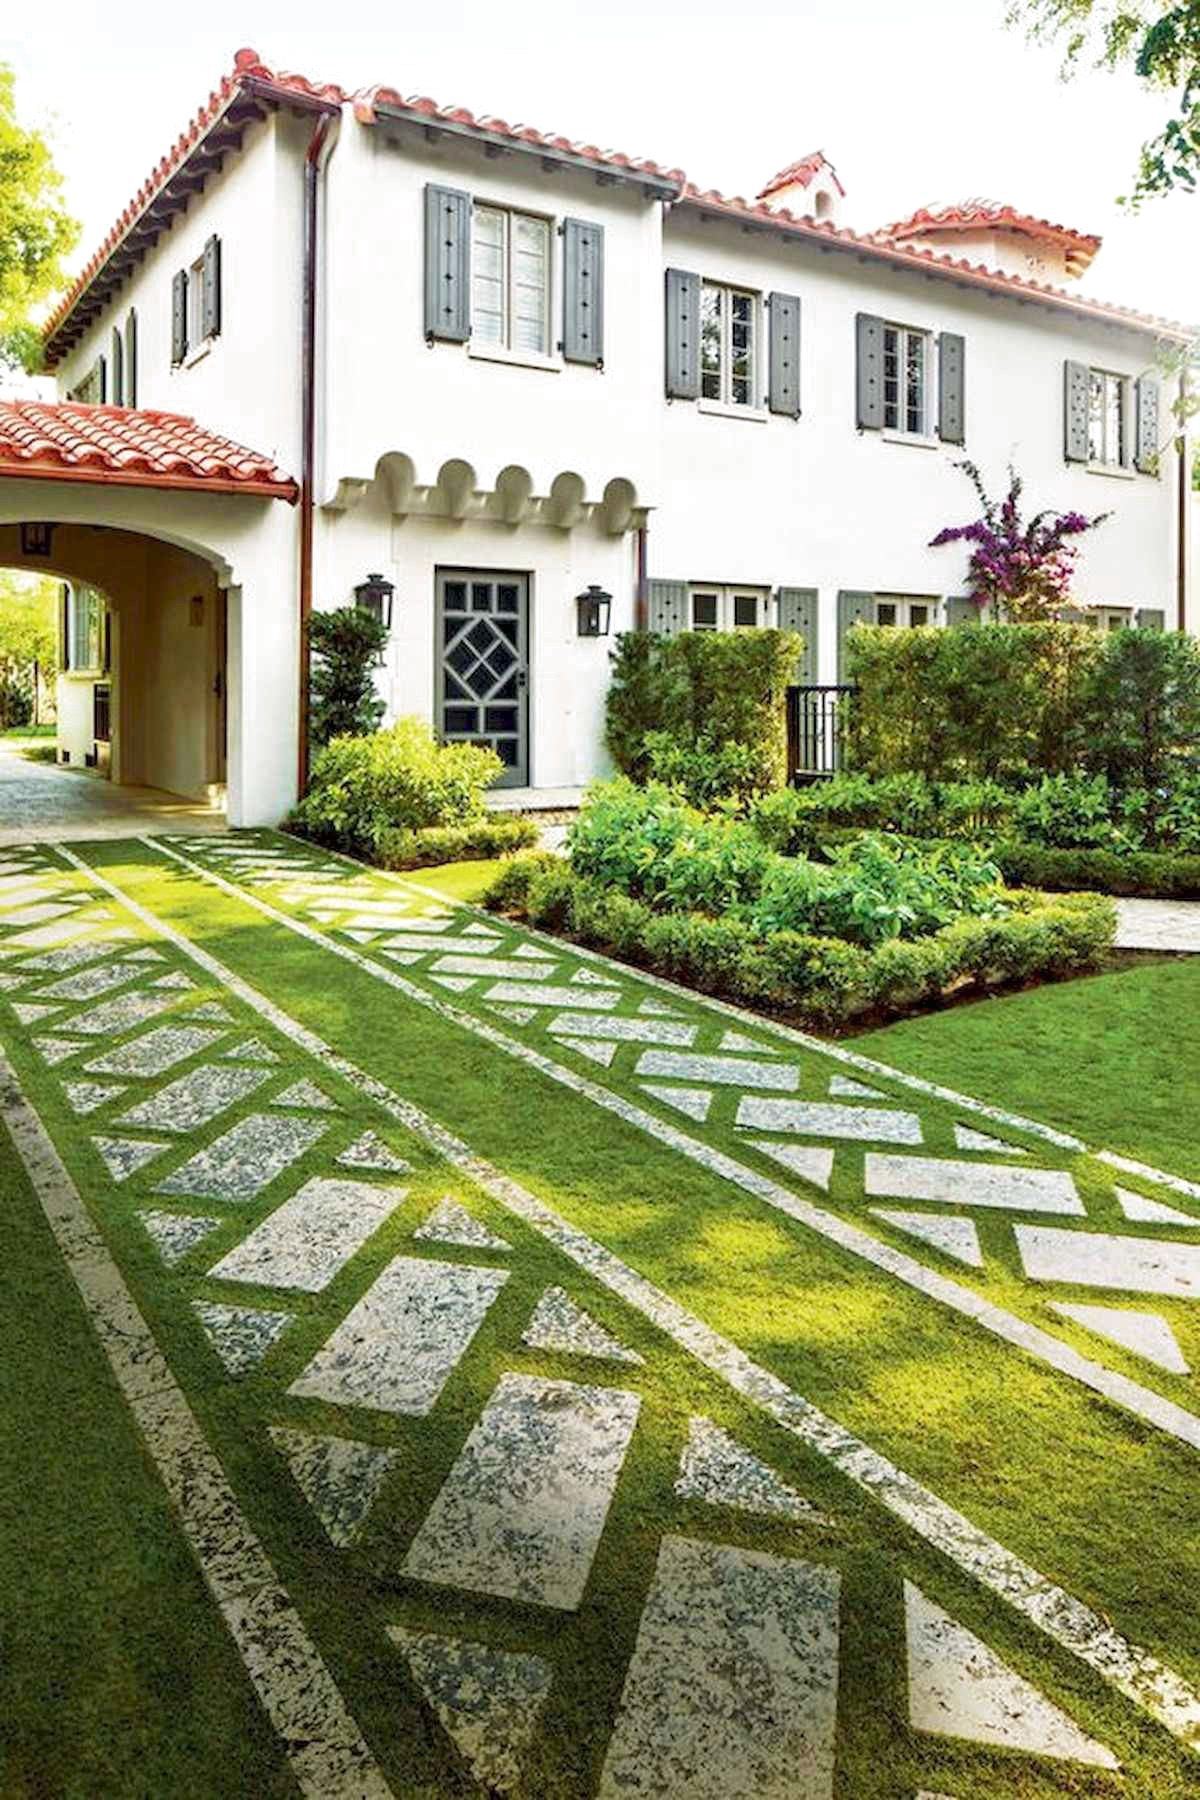 Photo of 59 Beautiful Garden Path And Walkway Ideas Design Ideas And Remodel #GardenPath